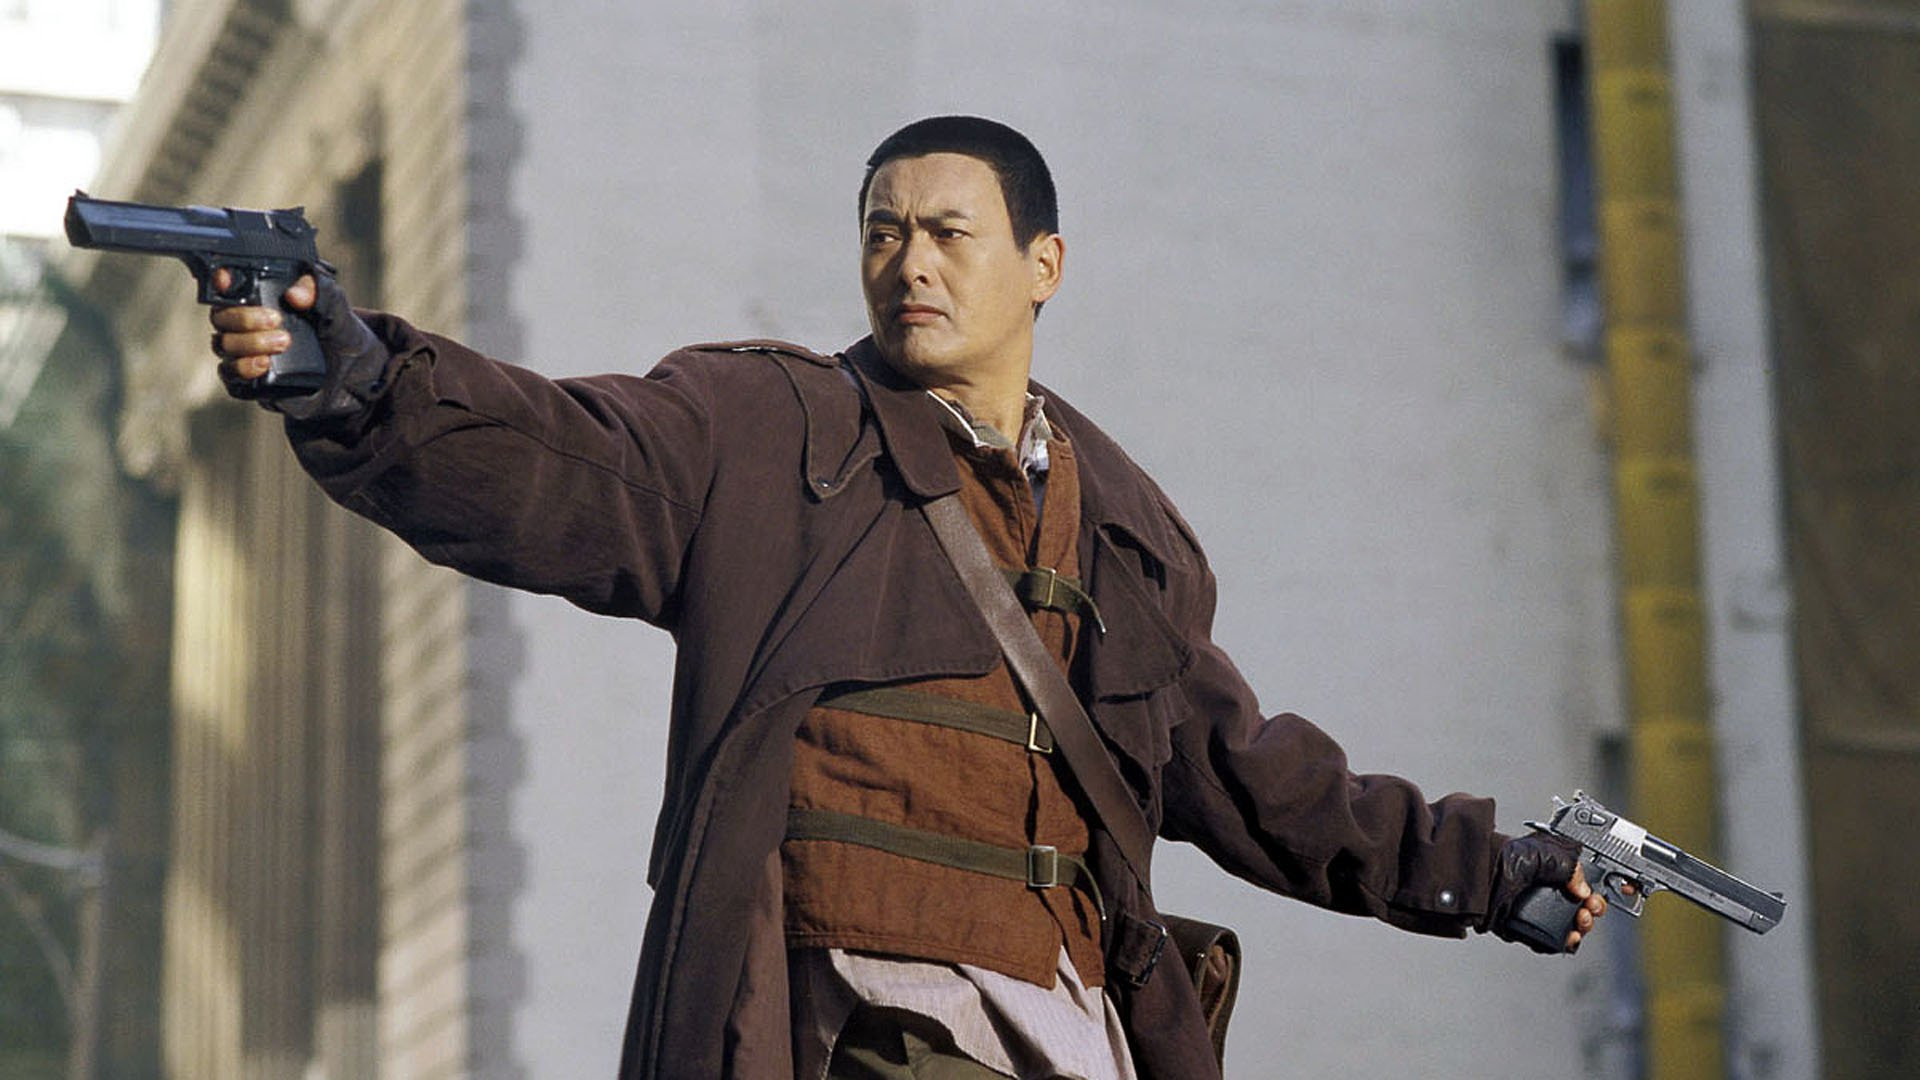 Chow Yun Fat in action as the the Monk With No Name in Bulletproof Monk (2003)